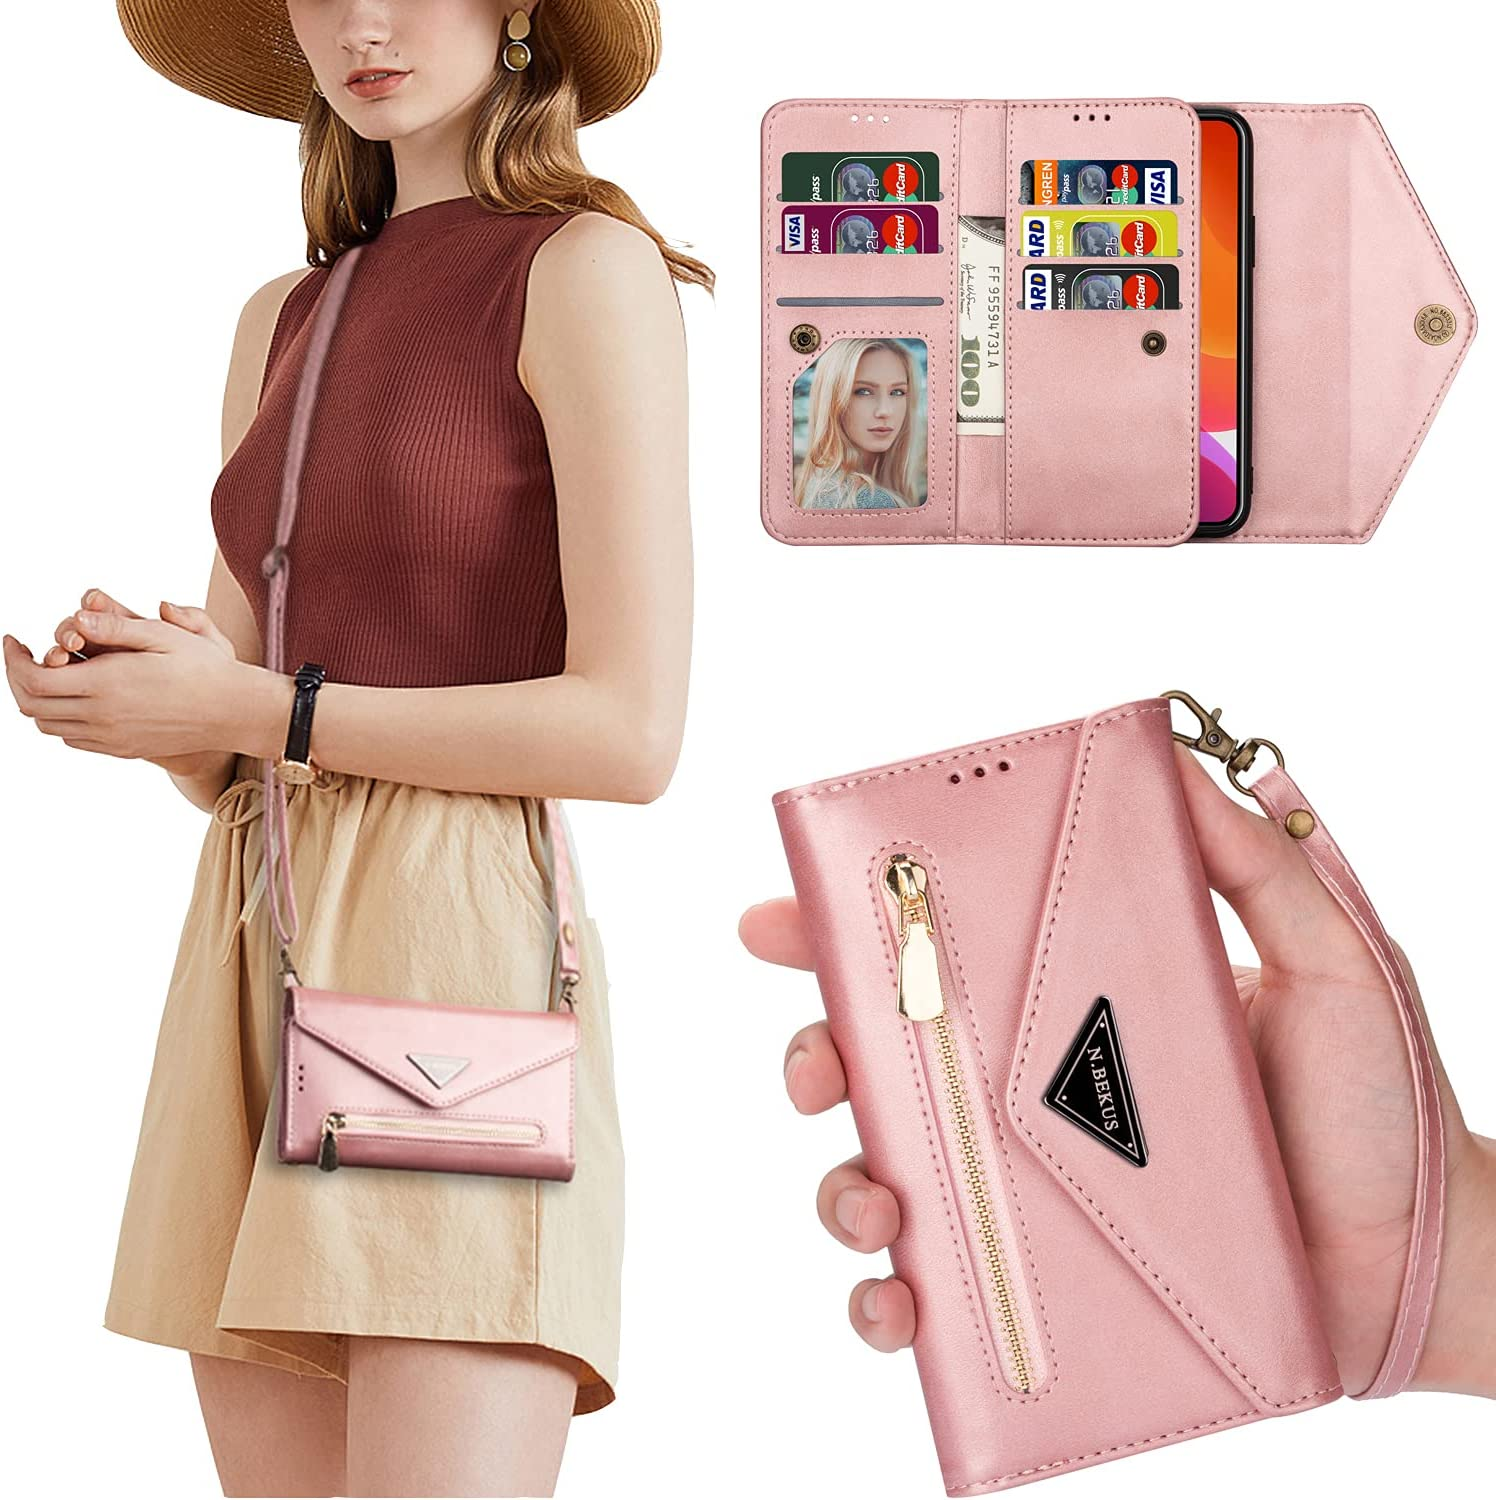 Crossbody Case for iPhone 13 Pro Max 6.7 inch Bumper Cover with Lanyard, Adjustable Shoulder Strap Leather Card Wallet Case (Rose Gold)